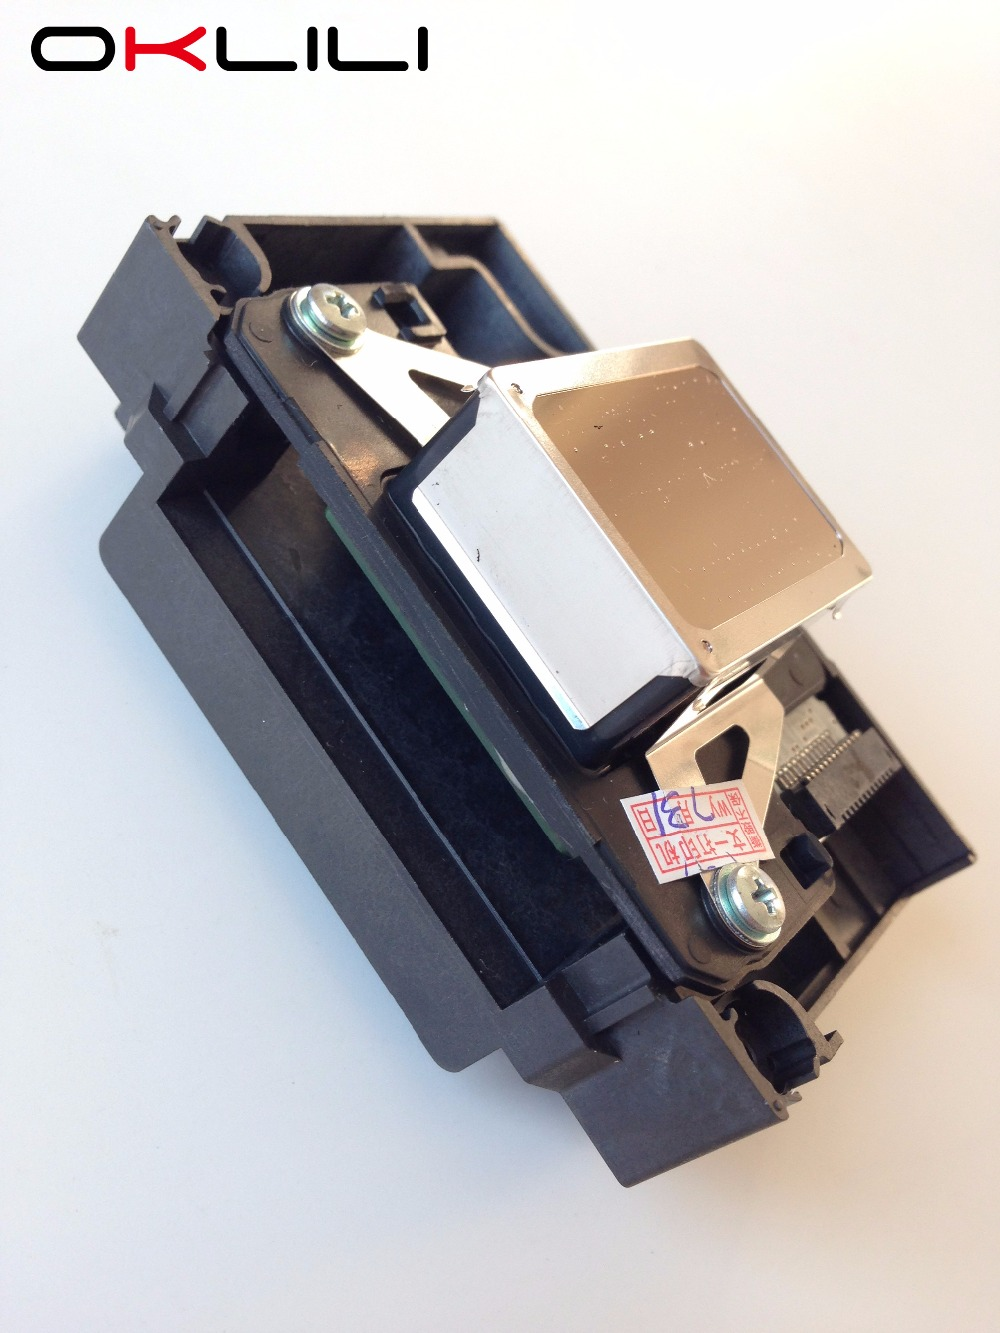 Image 4 - NEW F180000 Printhead Print Head for Epson R280 R285 R290 R330 R295 RX610 RX690 PX650 PX610 P50 P60 T50 T60 T59 TX650 L800 L801-in Printer Parts from Computer & Office